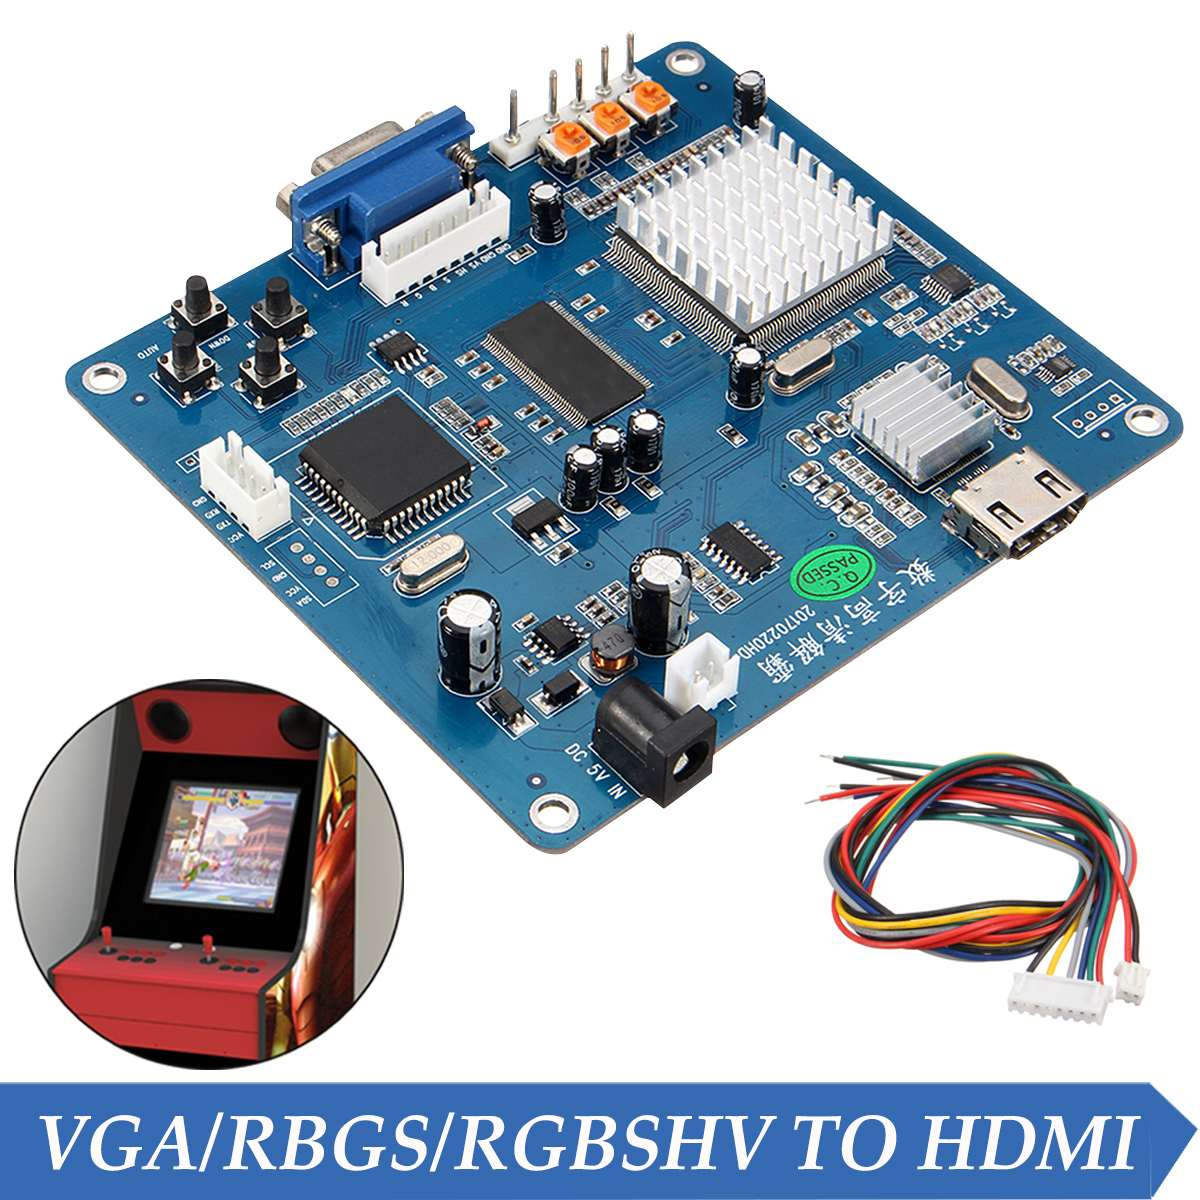 Arcade Game Video Output Converter Board VGA/RGB/CGA/EGA/YUV TO HDMI HD/Jamma Arcade Game Machine Video Output Converter Board free shipping pandora box 4 vga cga output for lcdcrt 645in1 game board arcade bundle video arcade jamma accesorios kit arcade